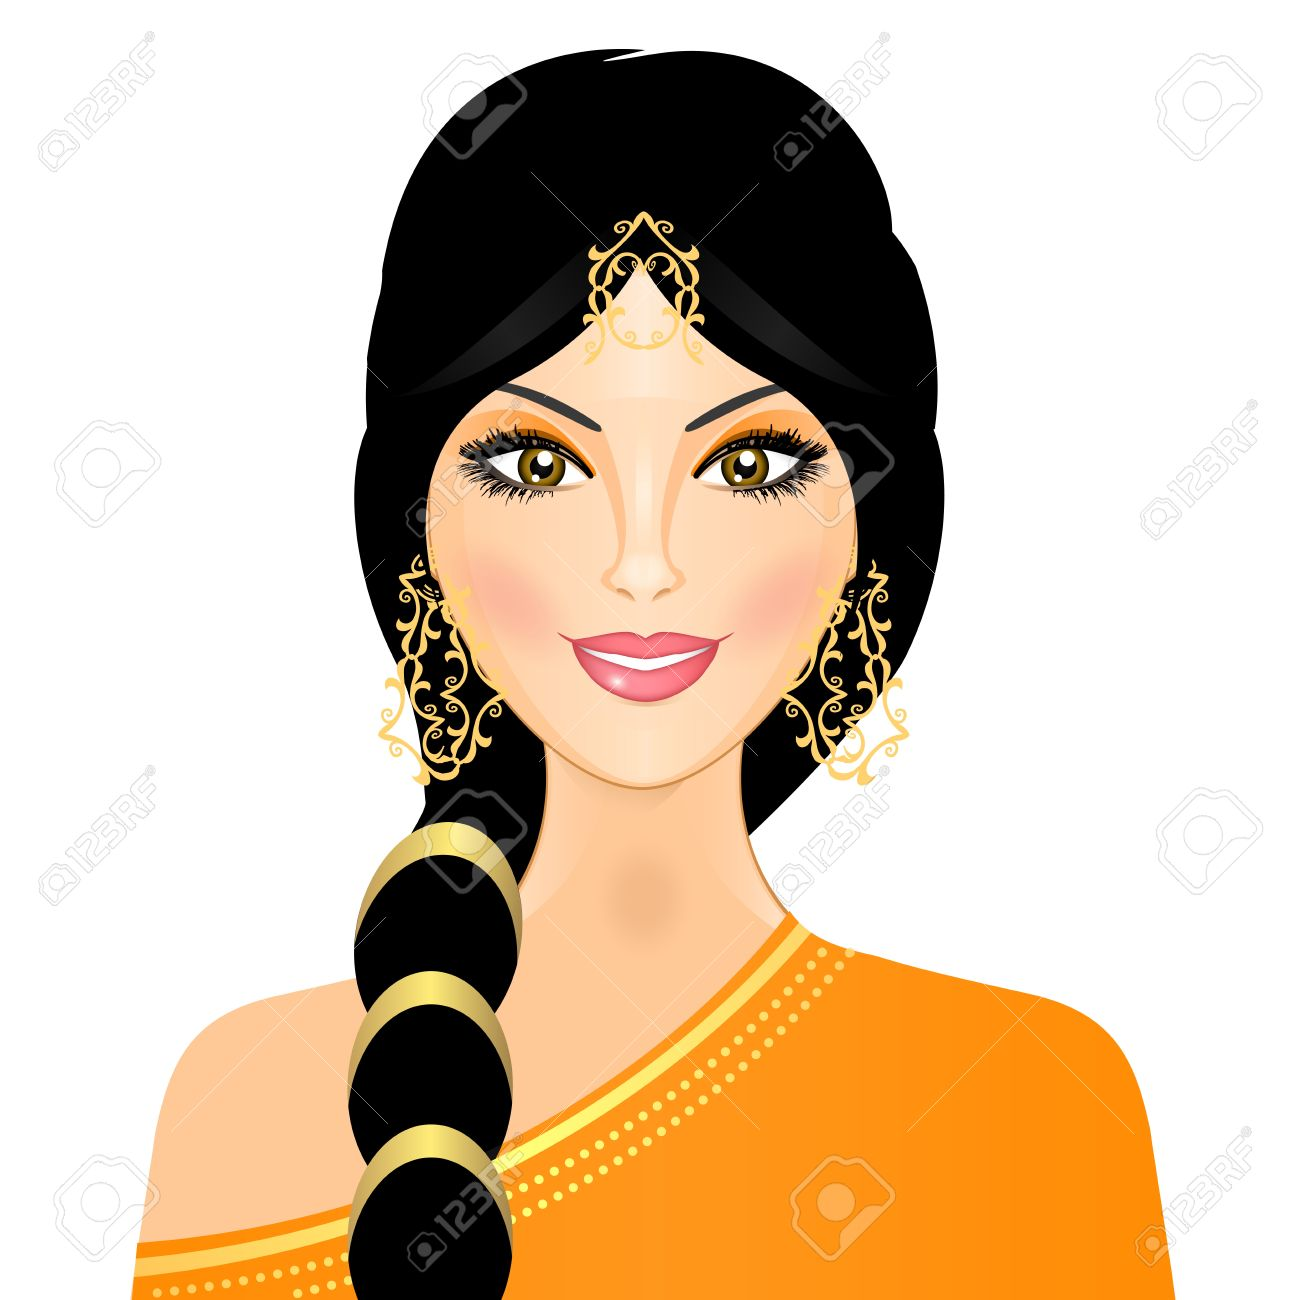 Indian girl clipart 7 » Clipart Station.